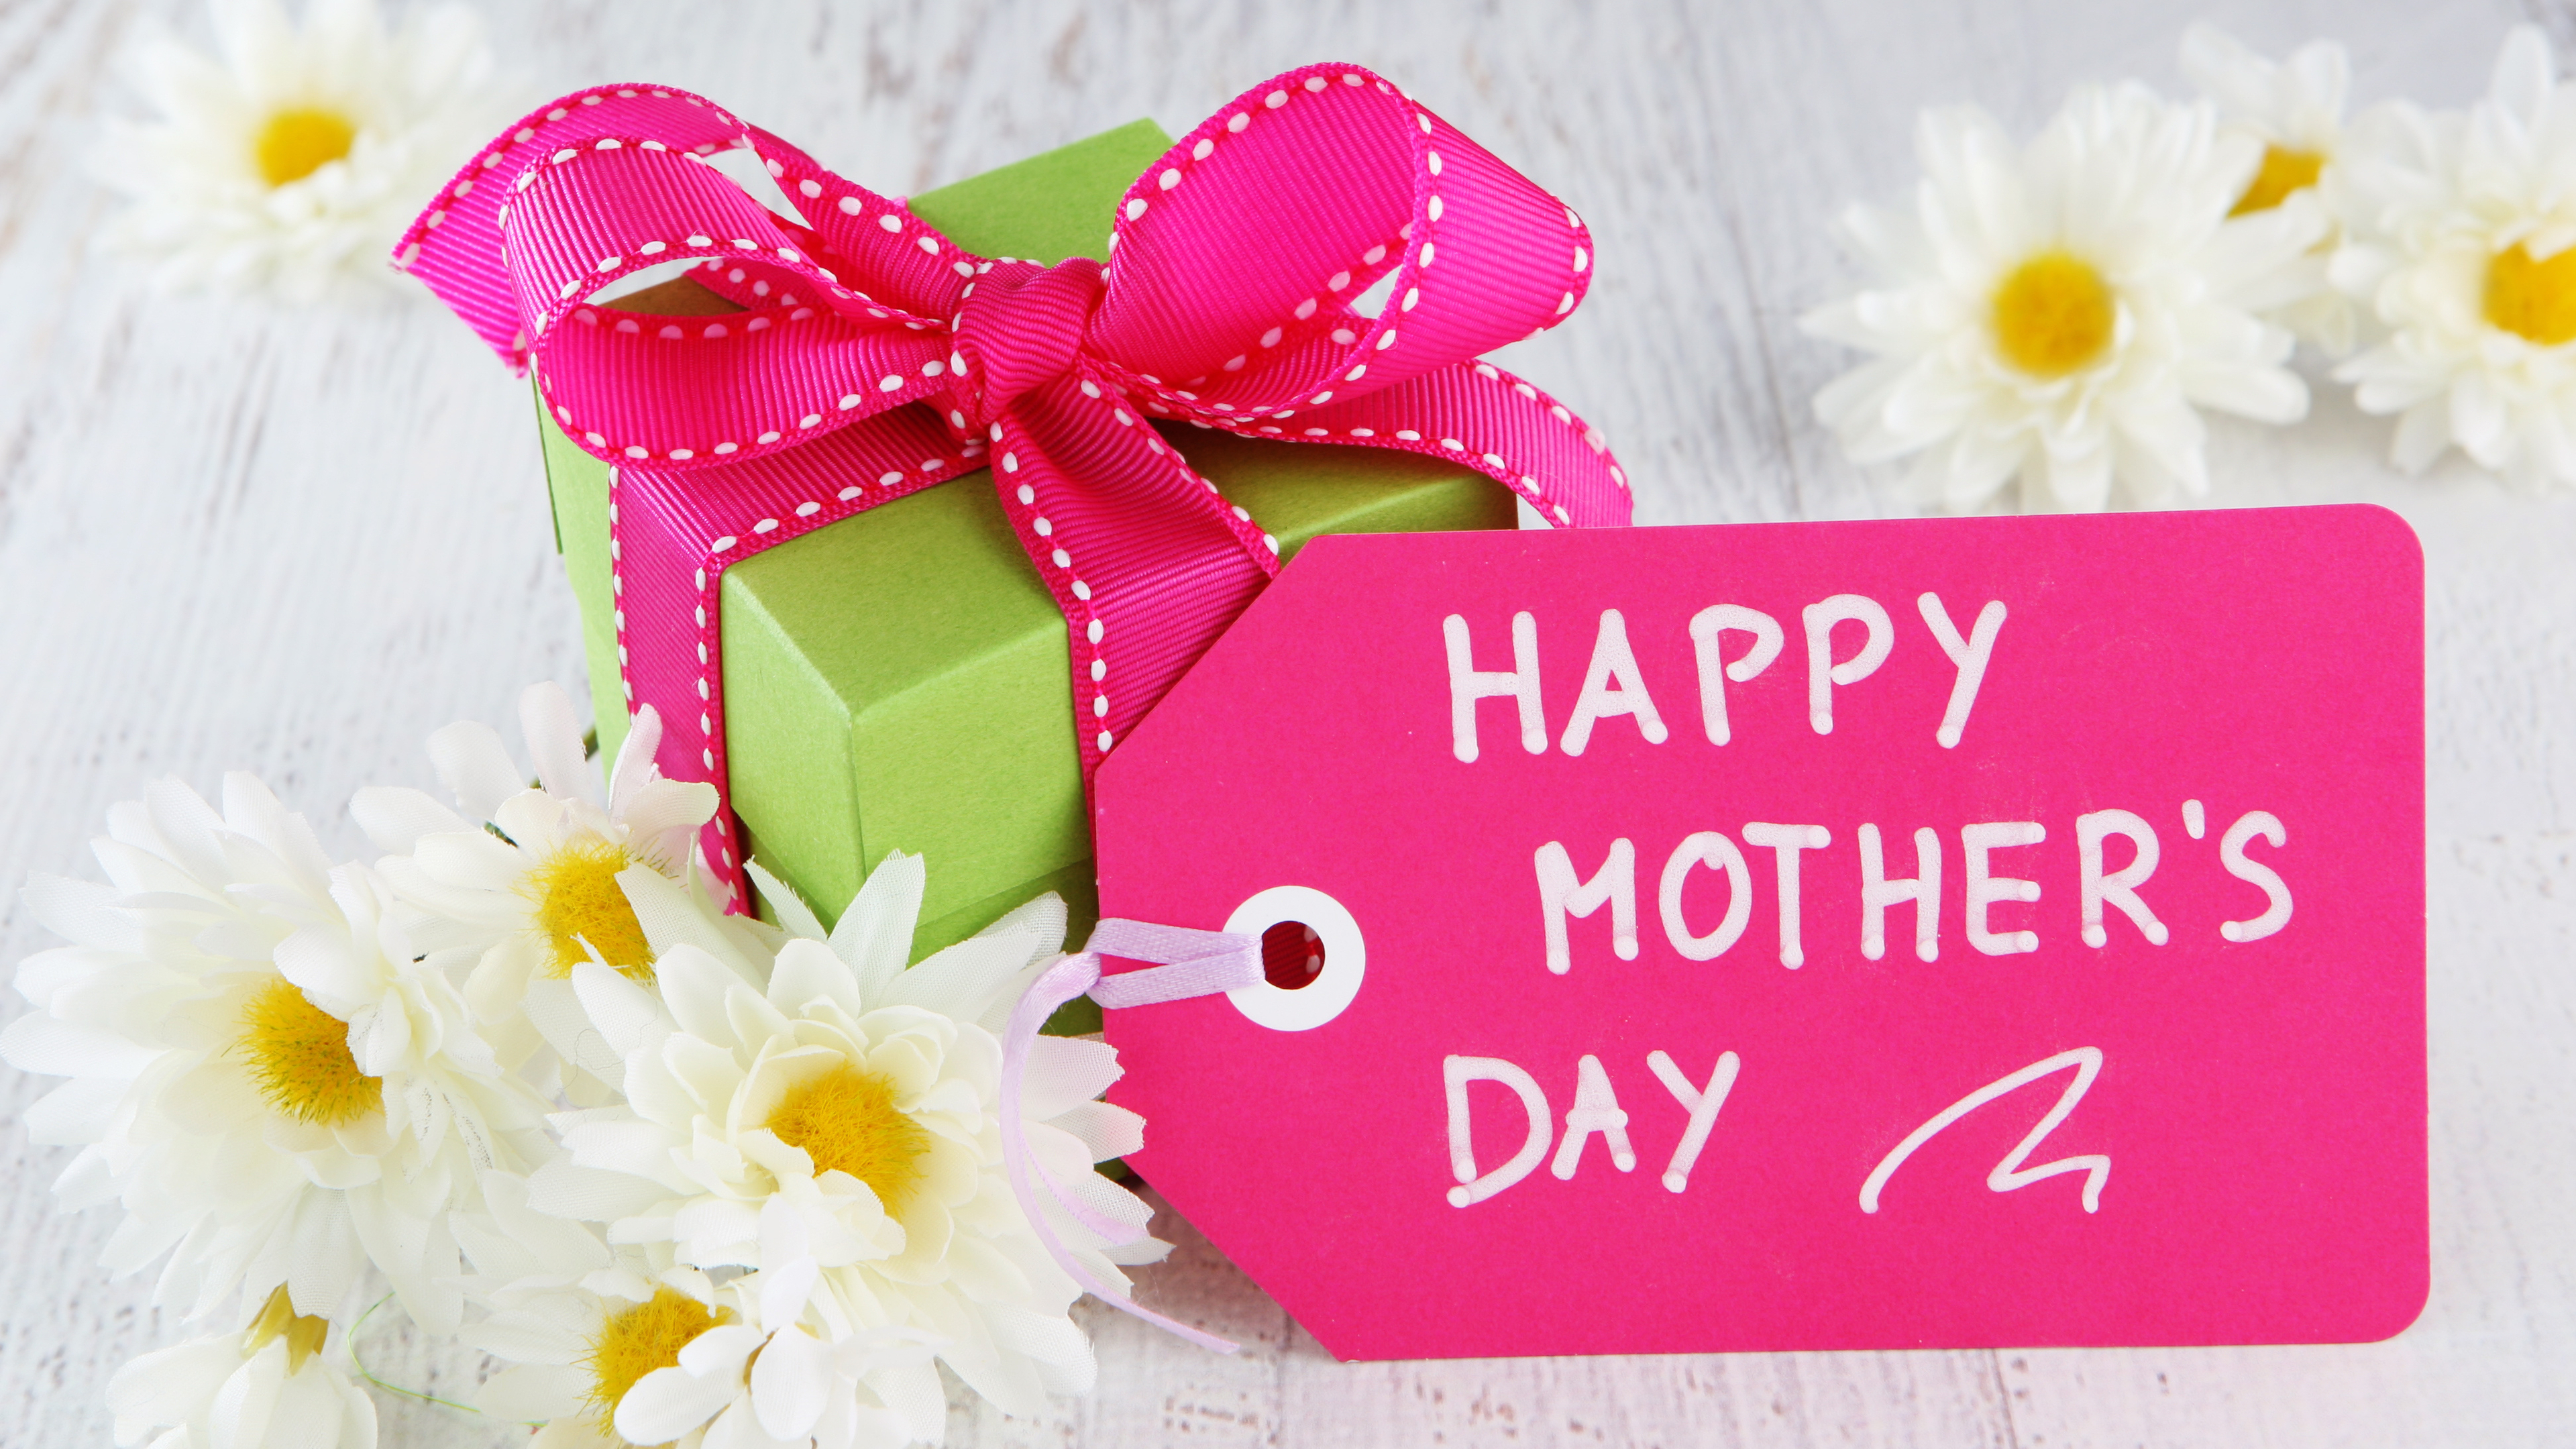 Happy Mother S Day Wallpaper Hd 4k For Desktop